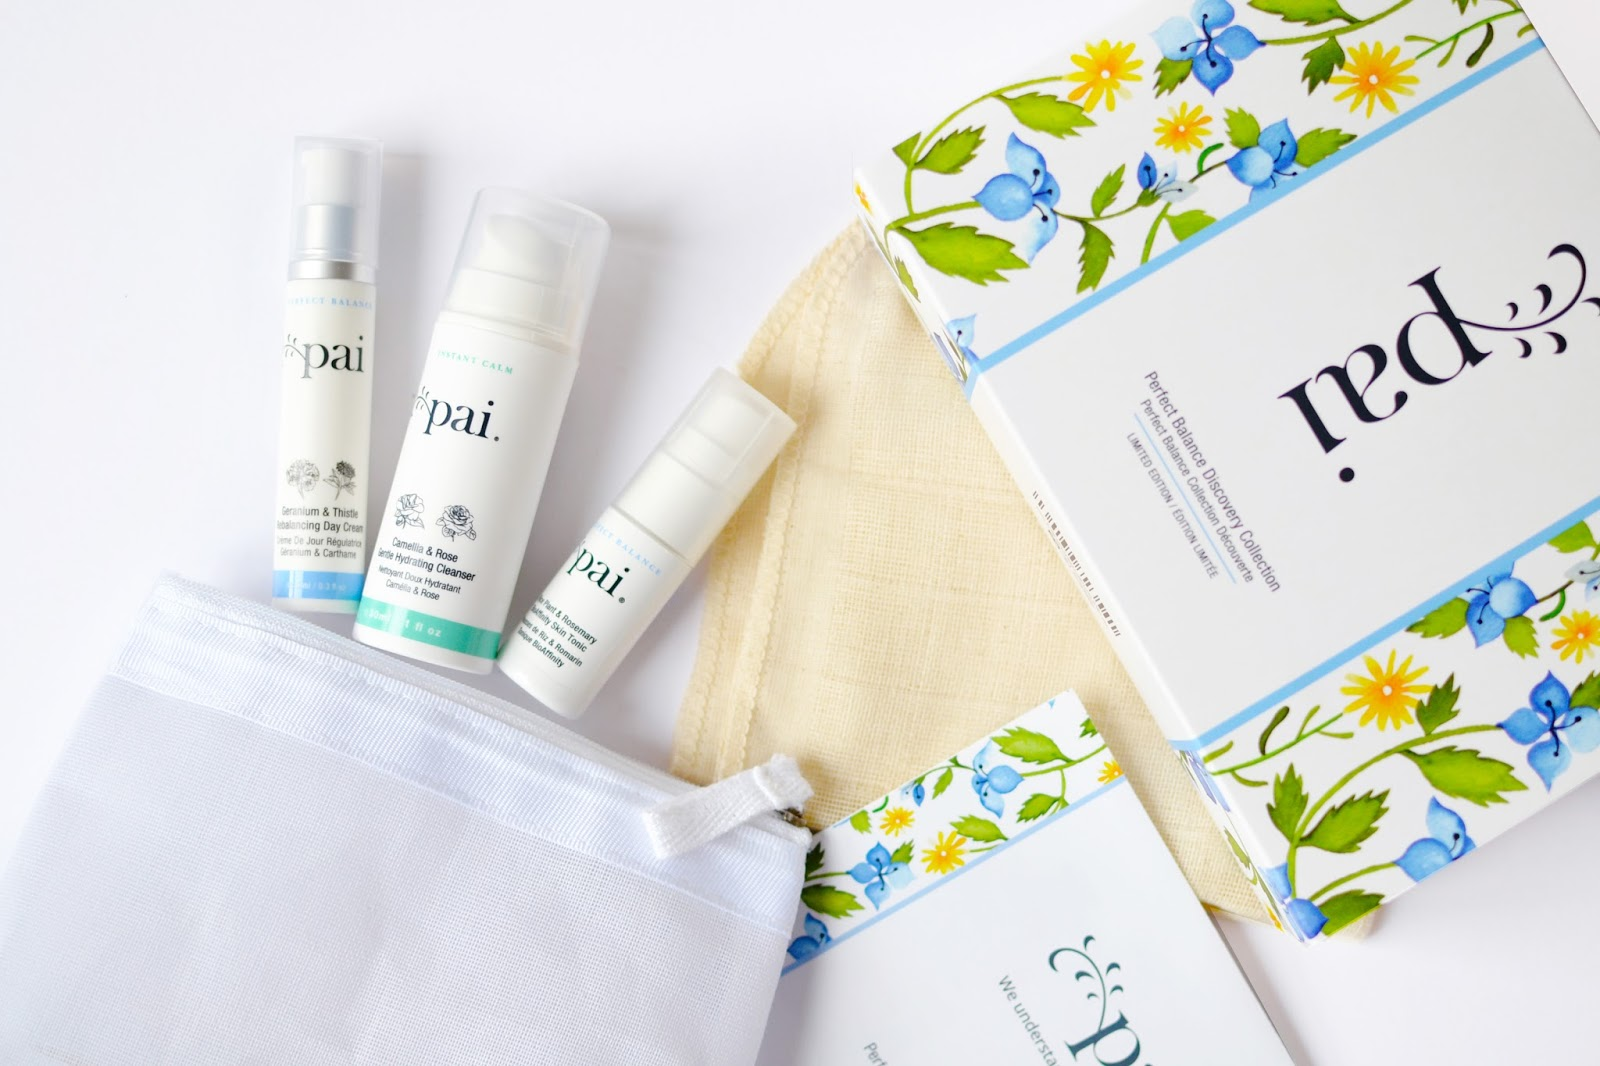 Pai Skincare for sensitive skin